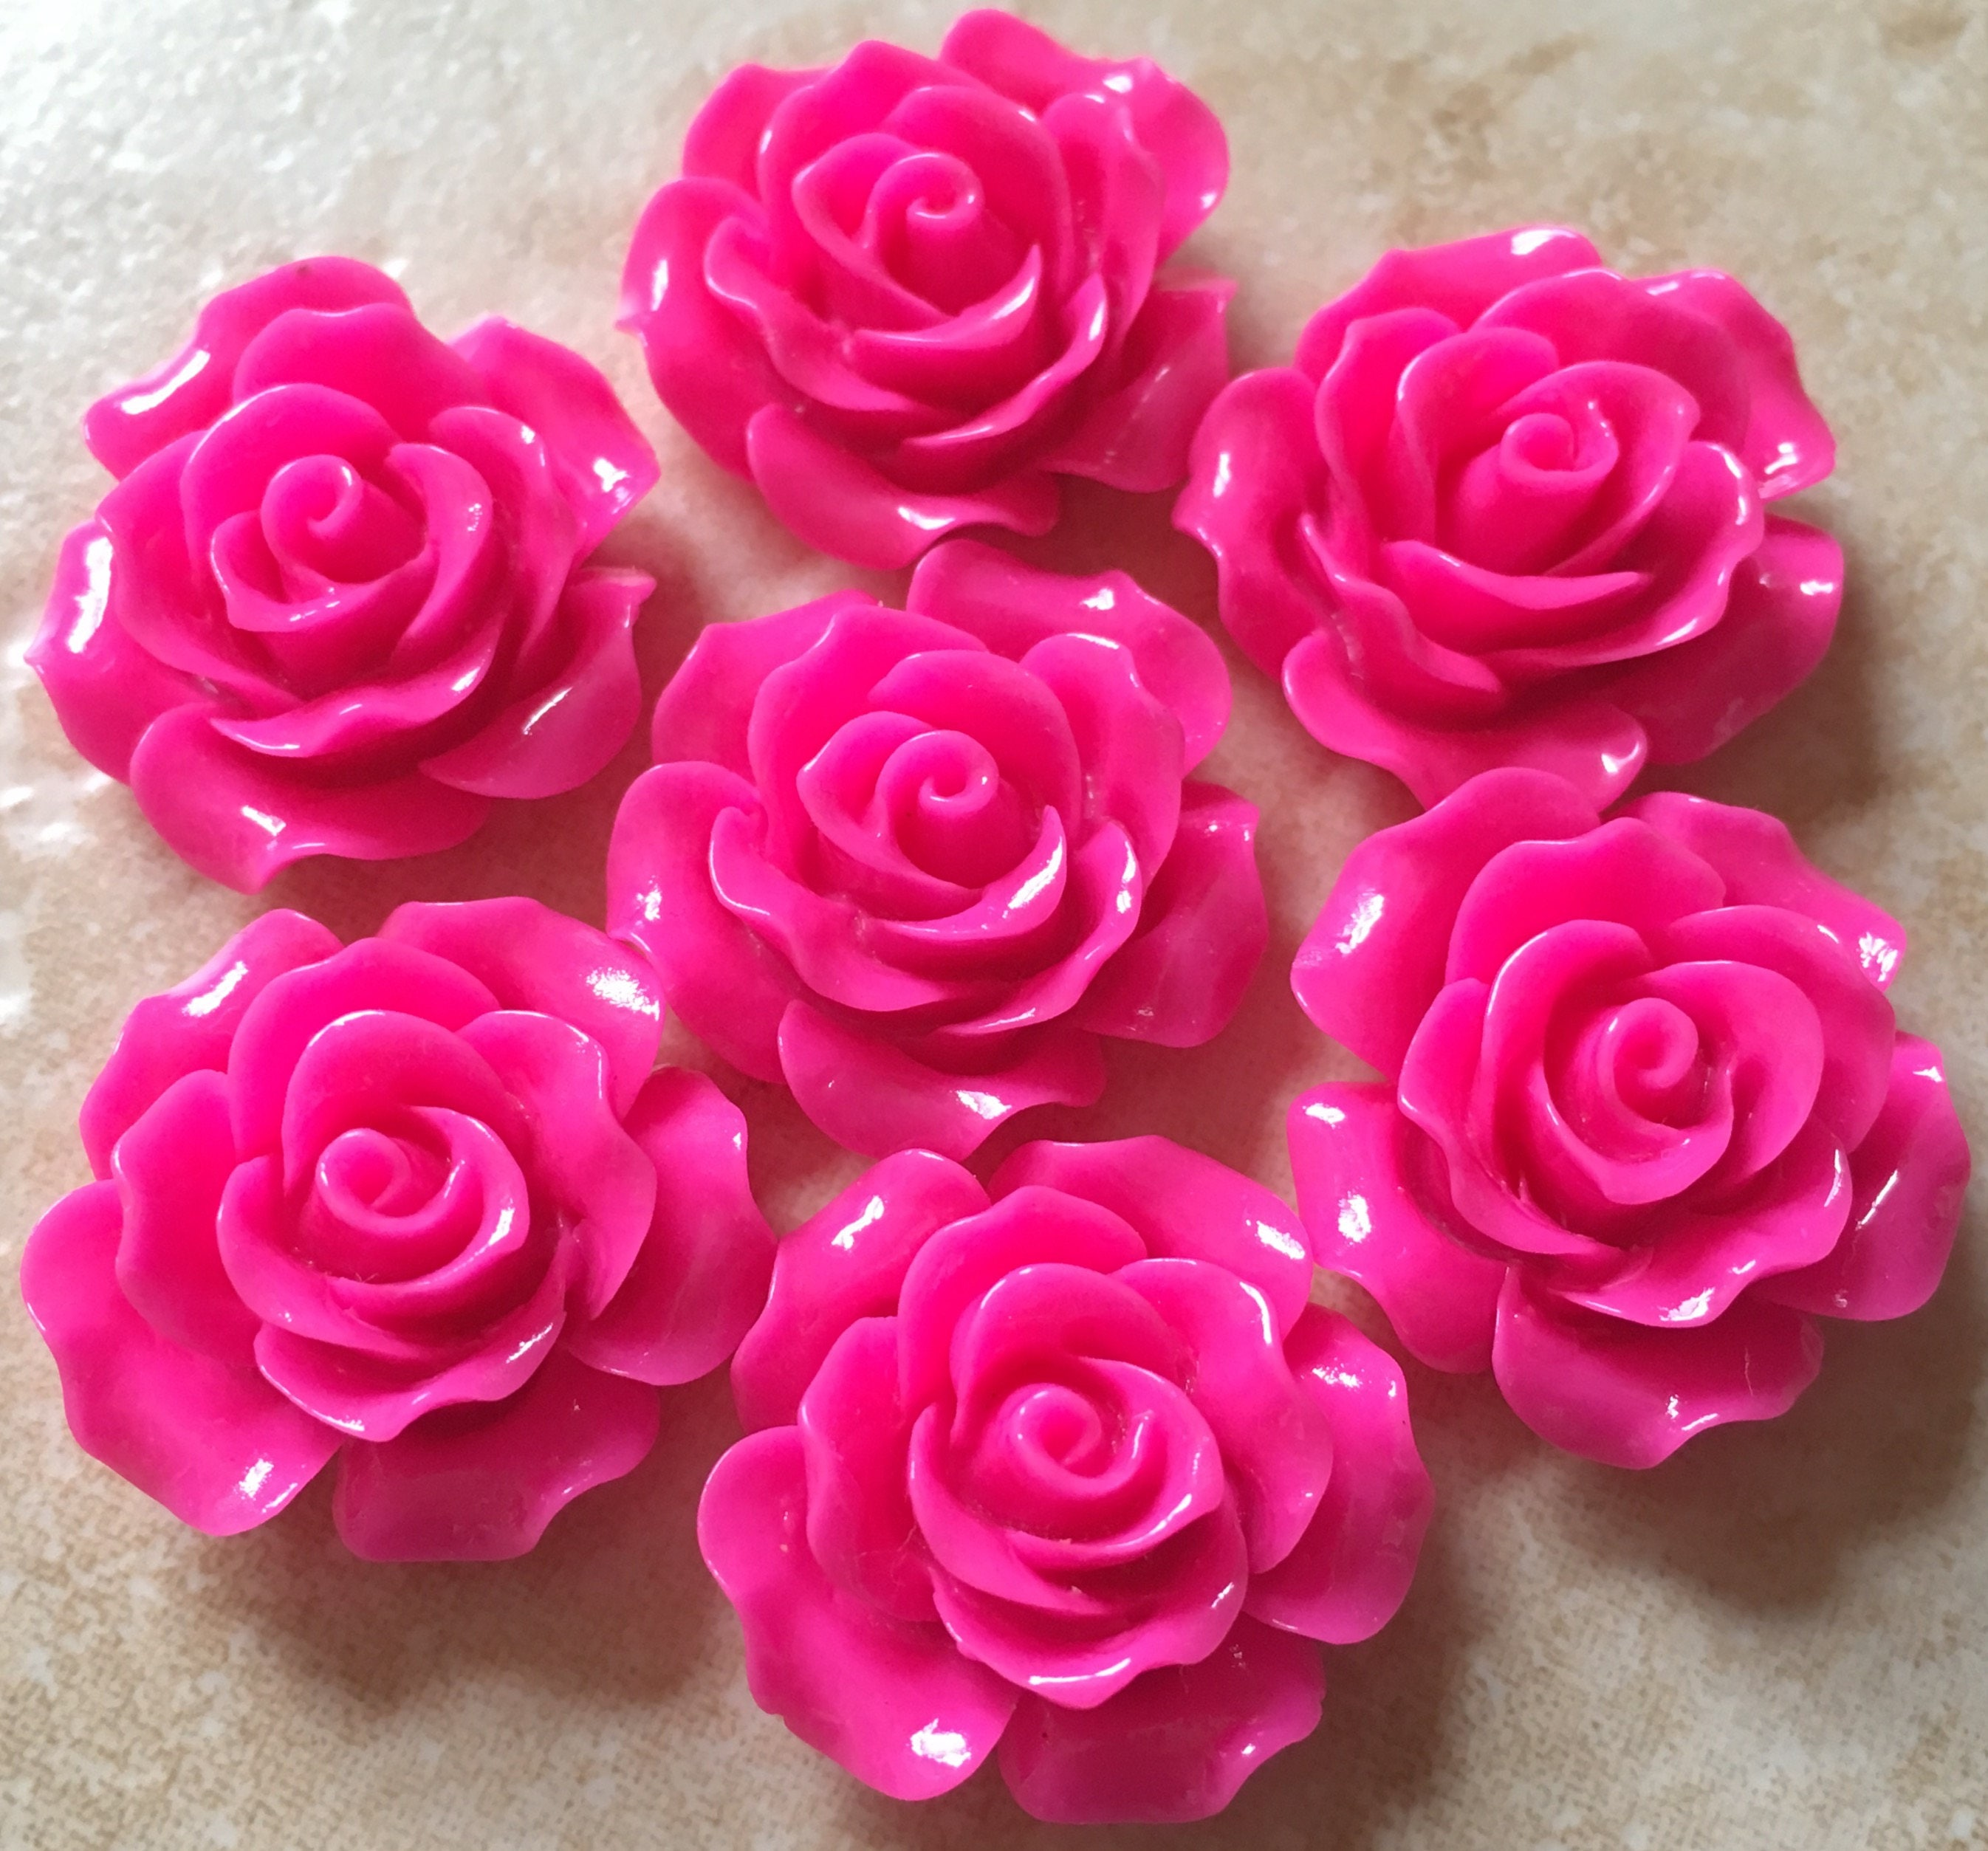 8 Pcs 20 Mm Cabochon Flowers 20 Mm Rose Hot Pink Rose Etsy